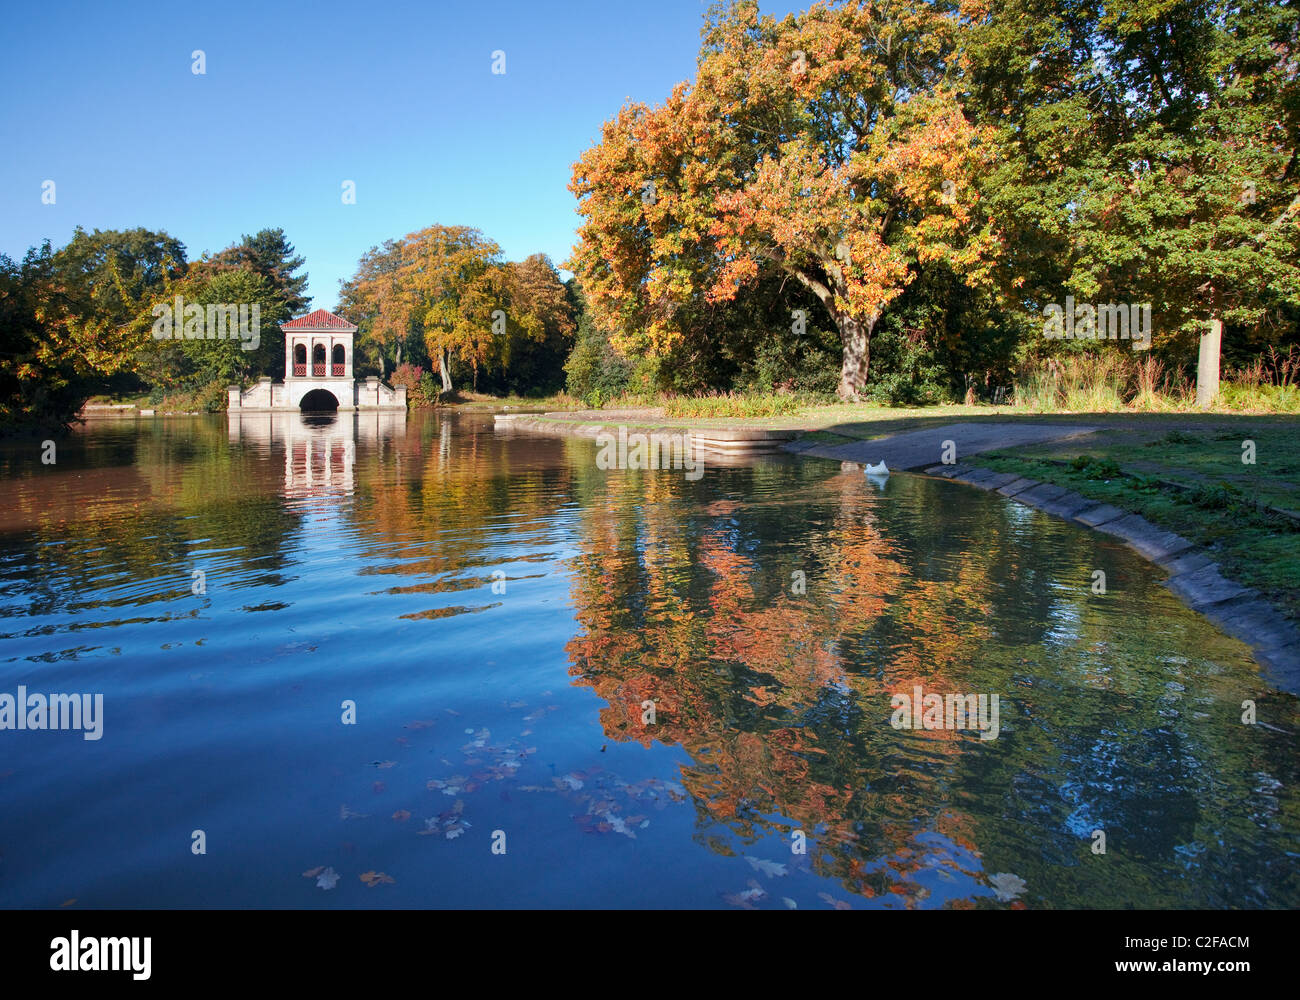 Boathouse at Birkenhead Park, Wirral, England, UK on an autumn day - Stock Image